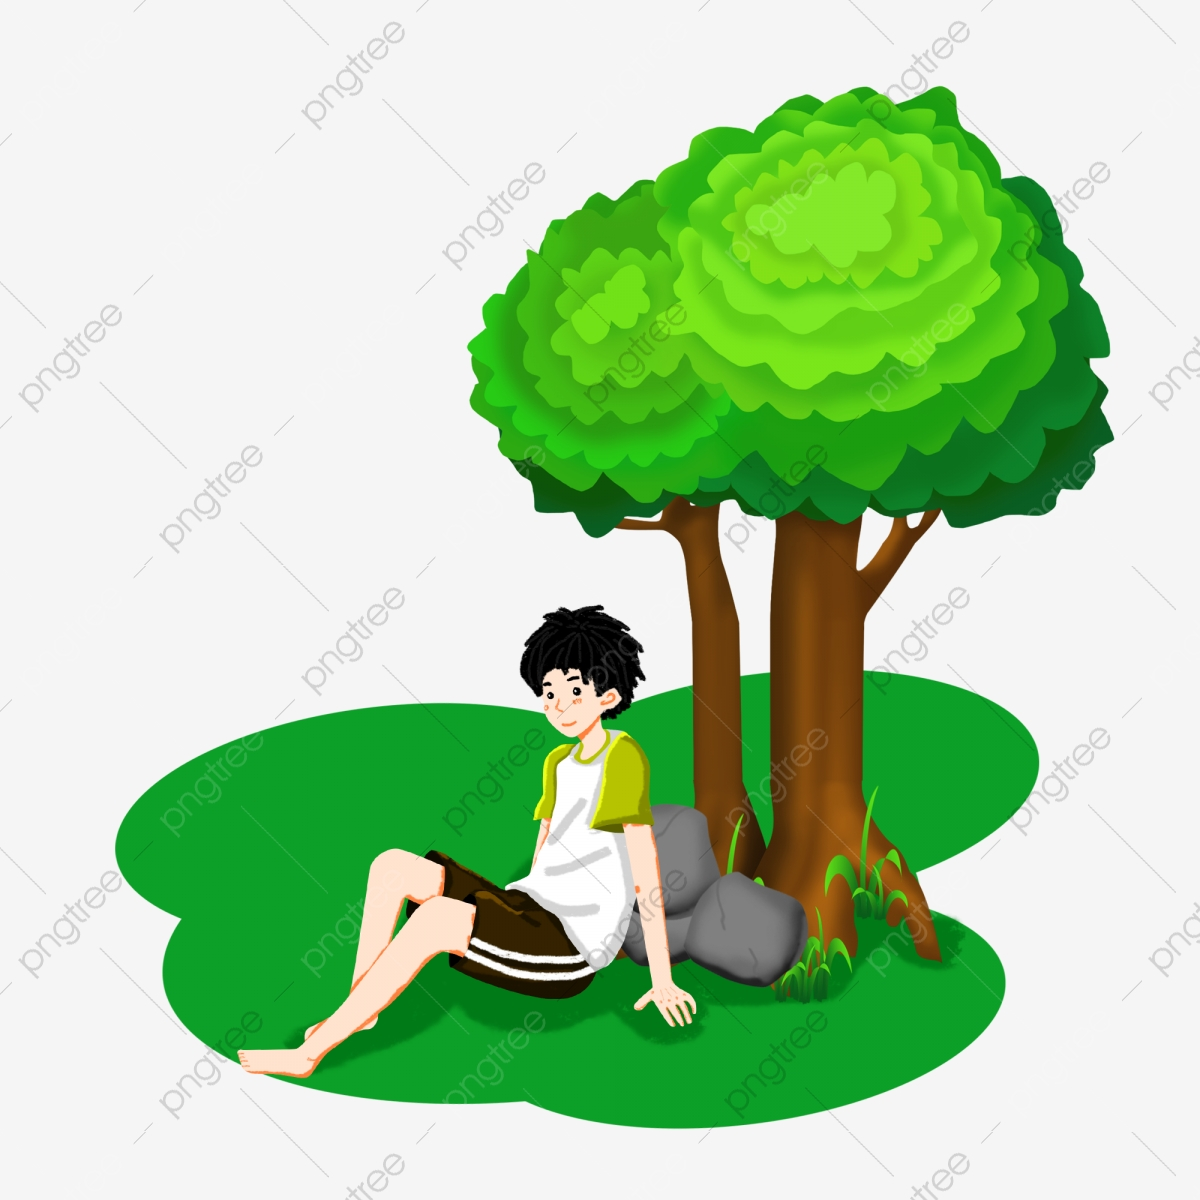 Sitting Under The Tree Png Images Vector And Psd Files Free Download On Pngtree The tree swing cartoon parodies, also known as what the customer really needed (japanese: https pngtree com freepng sitting under the tree boy 4704025 html